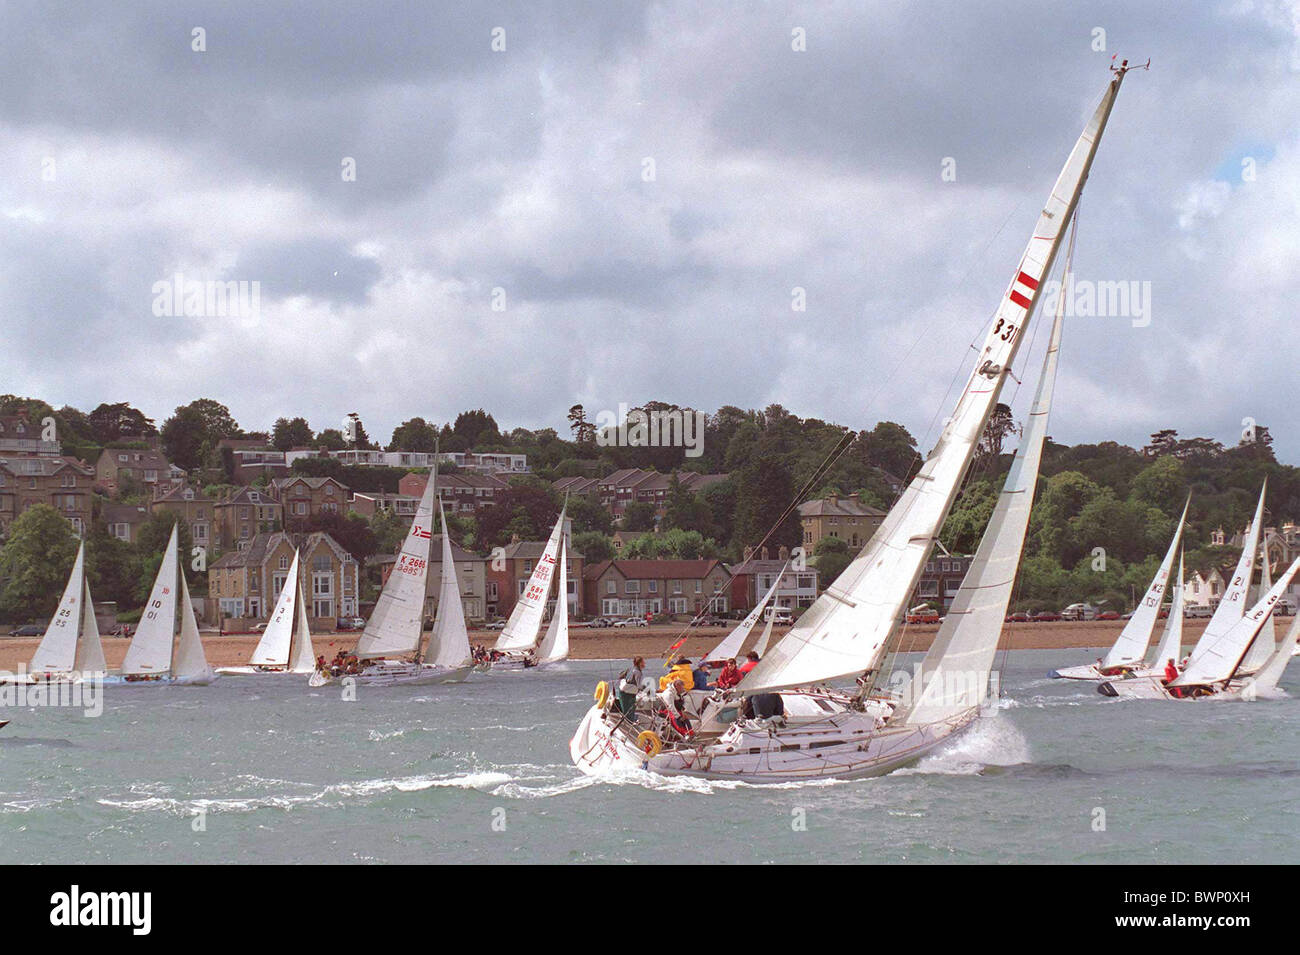 YACHTS SAILING AT COWES YACHTING REGATTA, ISLE OF WIGHT - Stock Image